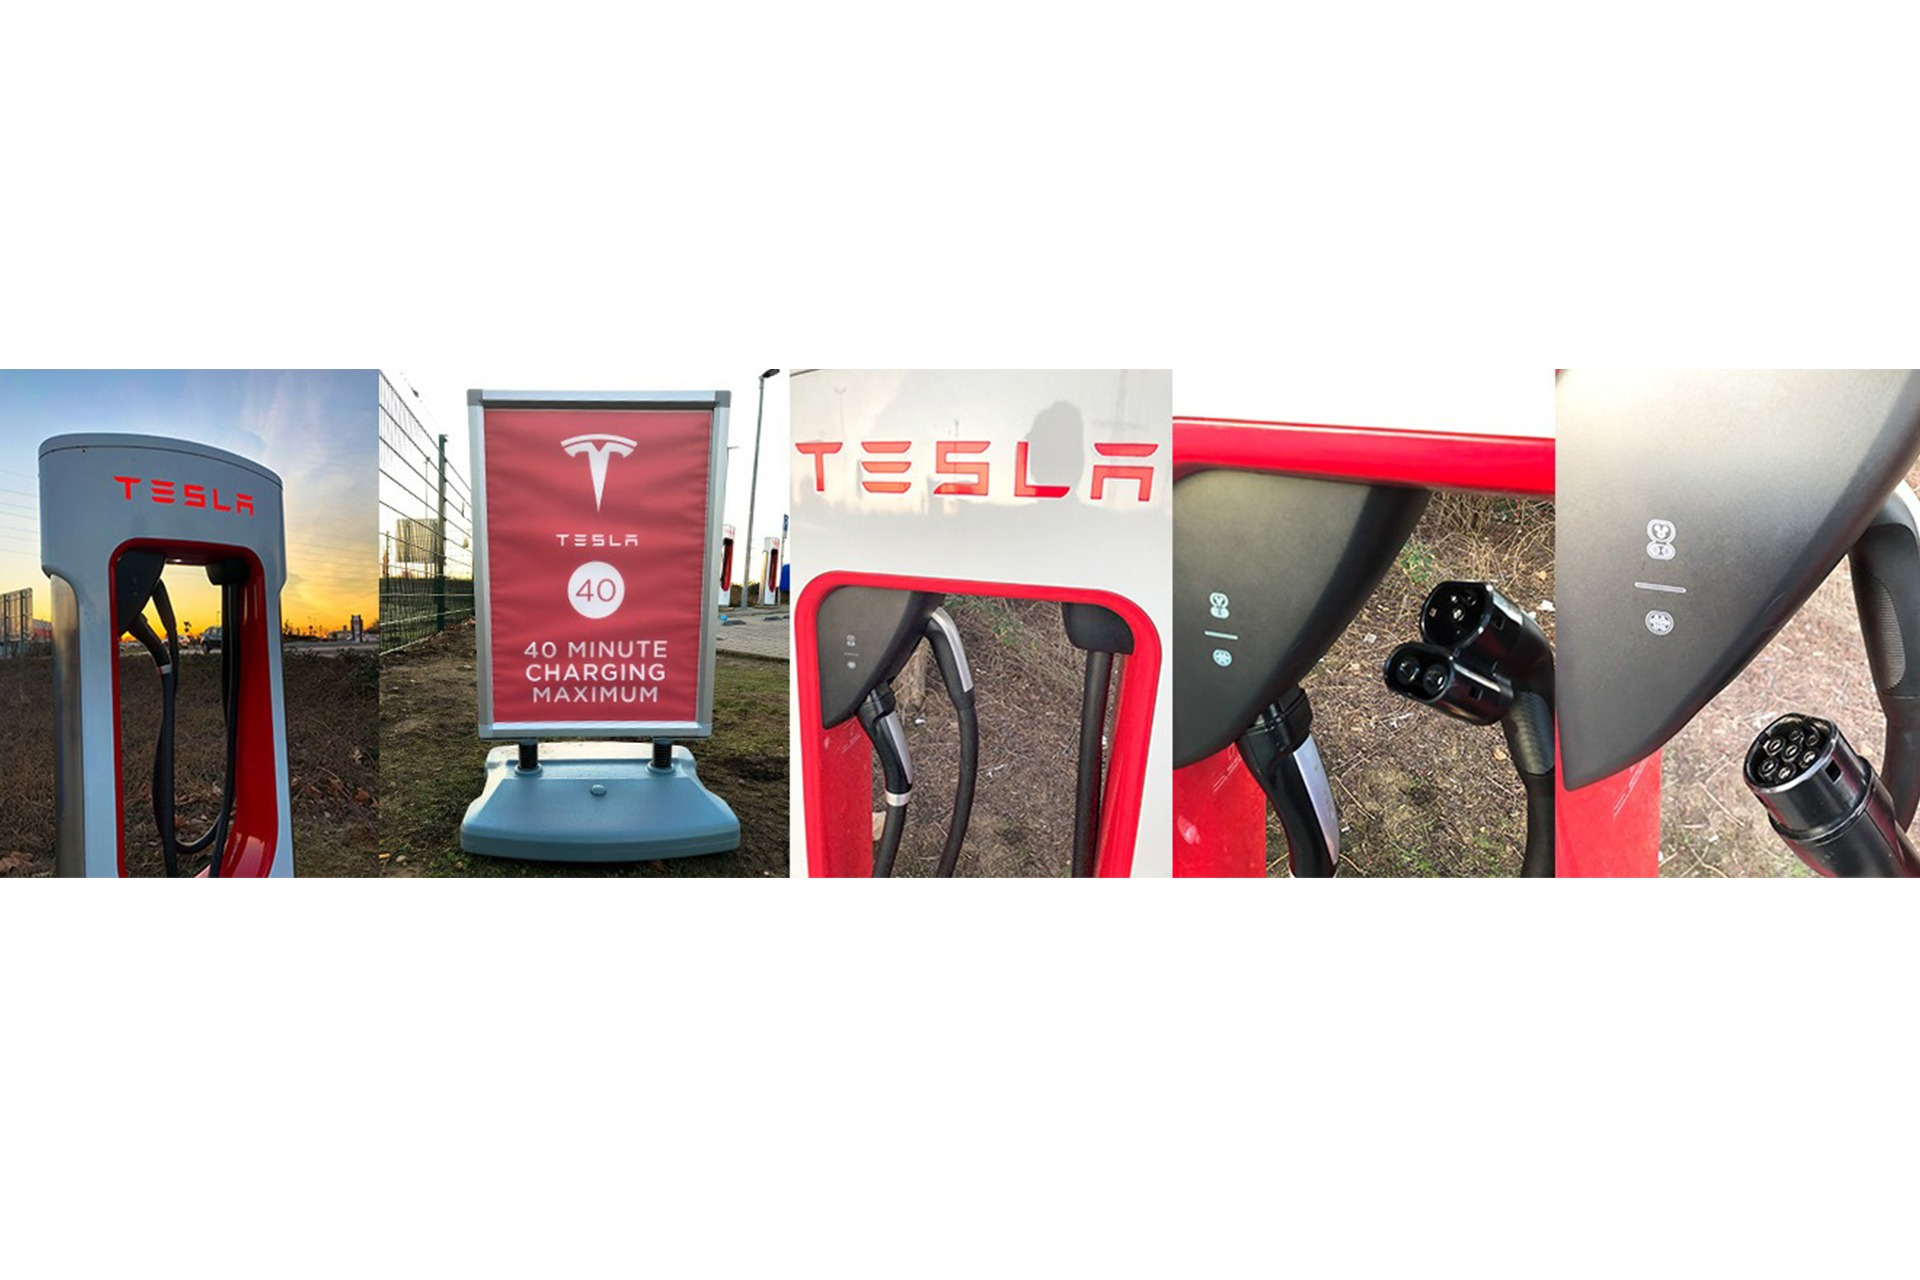 Tesla Supercharger SuC Erftstadt Laden Combo 2 Type 2 Type 2 CSS Combined Charging System Laderecht 40 Minute Charging Maximum Ladesäule